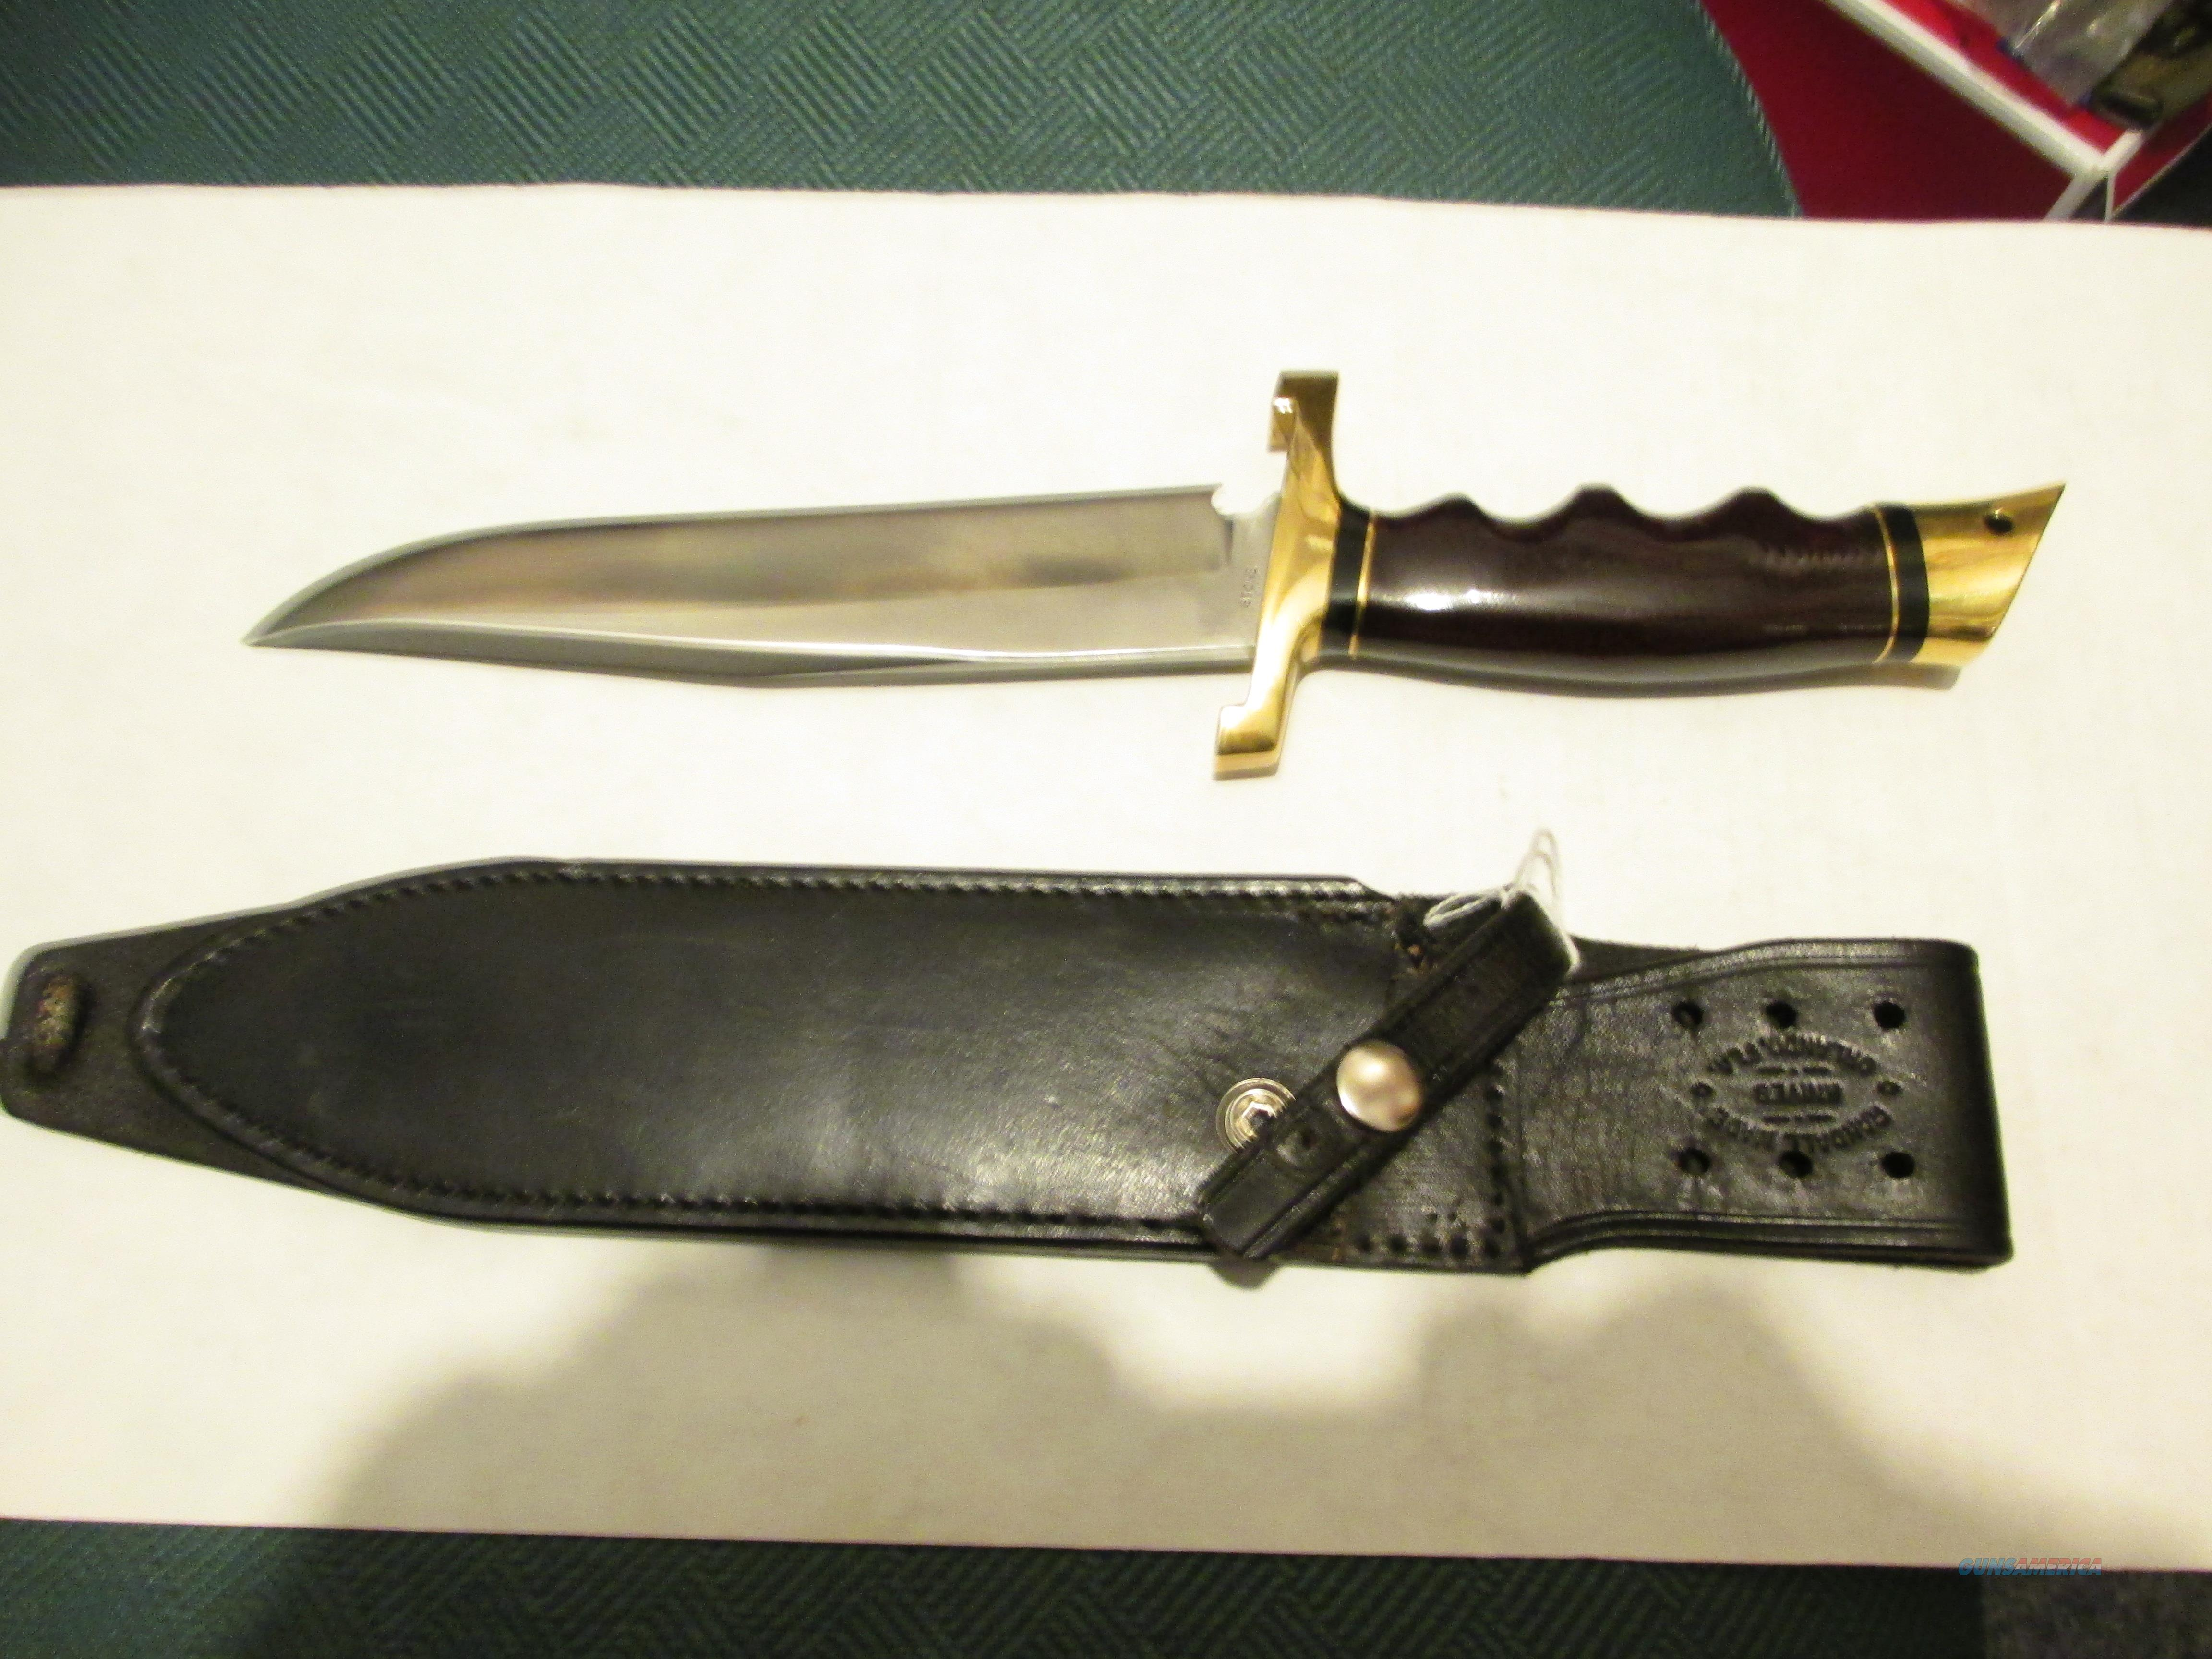 G.W STONE CUSTOM FIGHTING KNIFE 8 INCH BLADE   Non-Guns > Knives/Swords > Knives > Fixed Blade > Hand Made